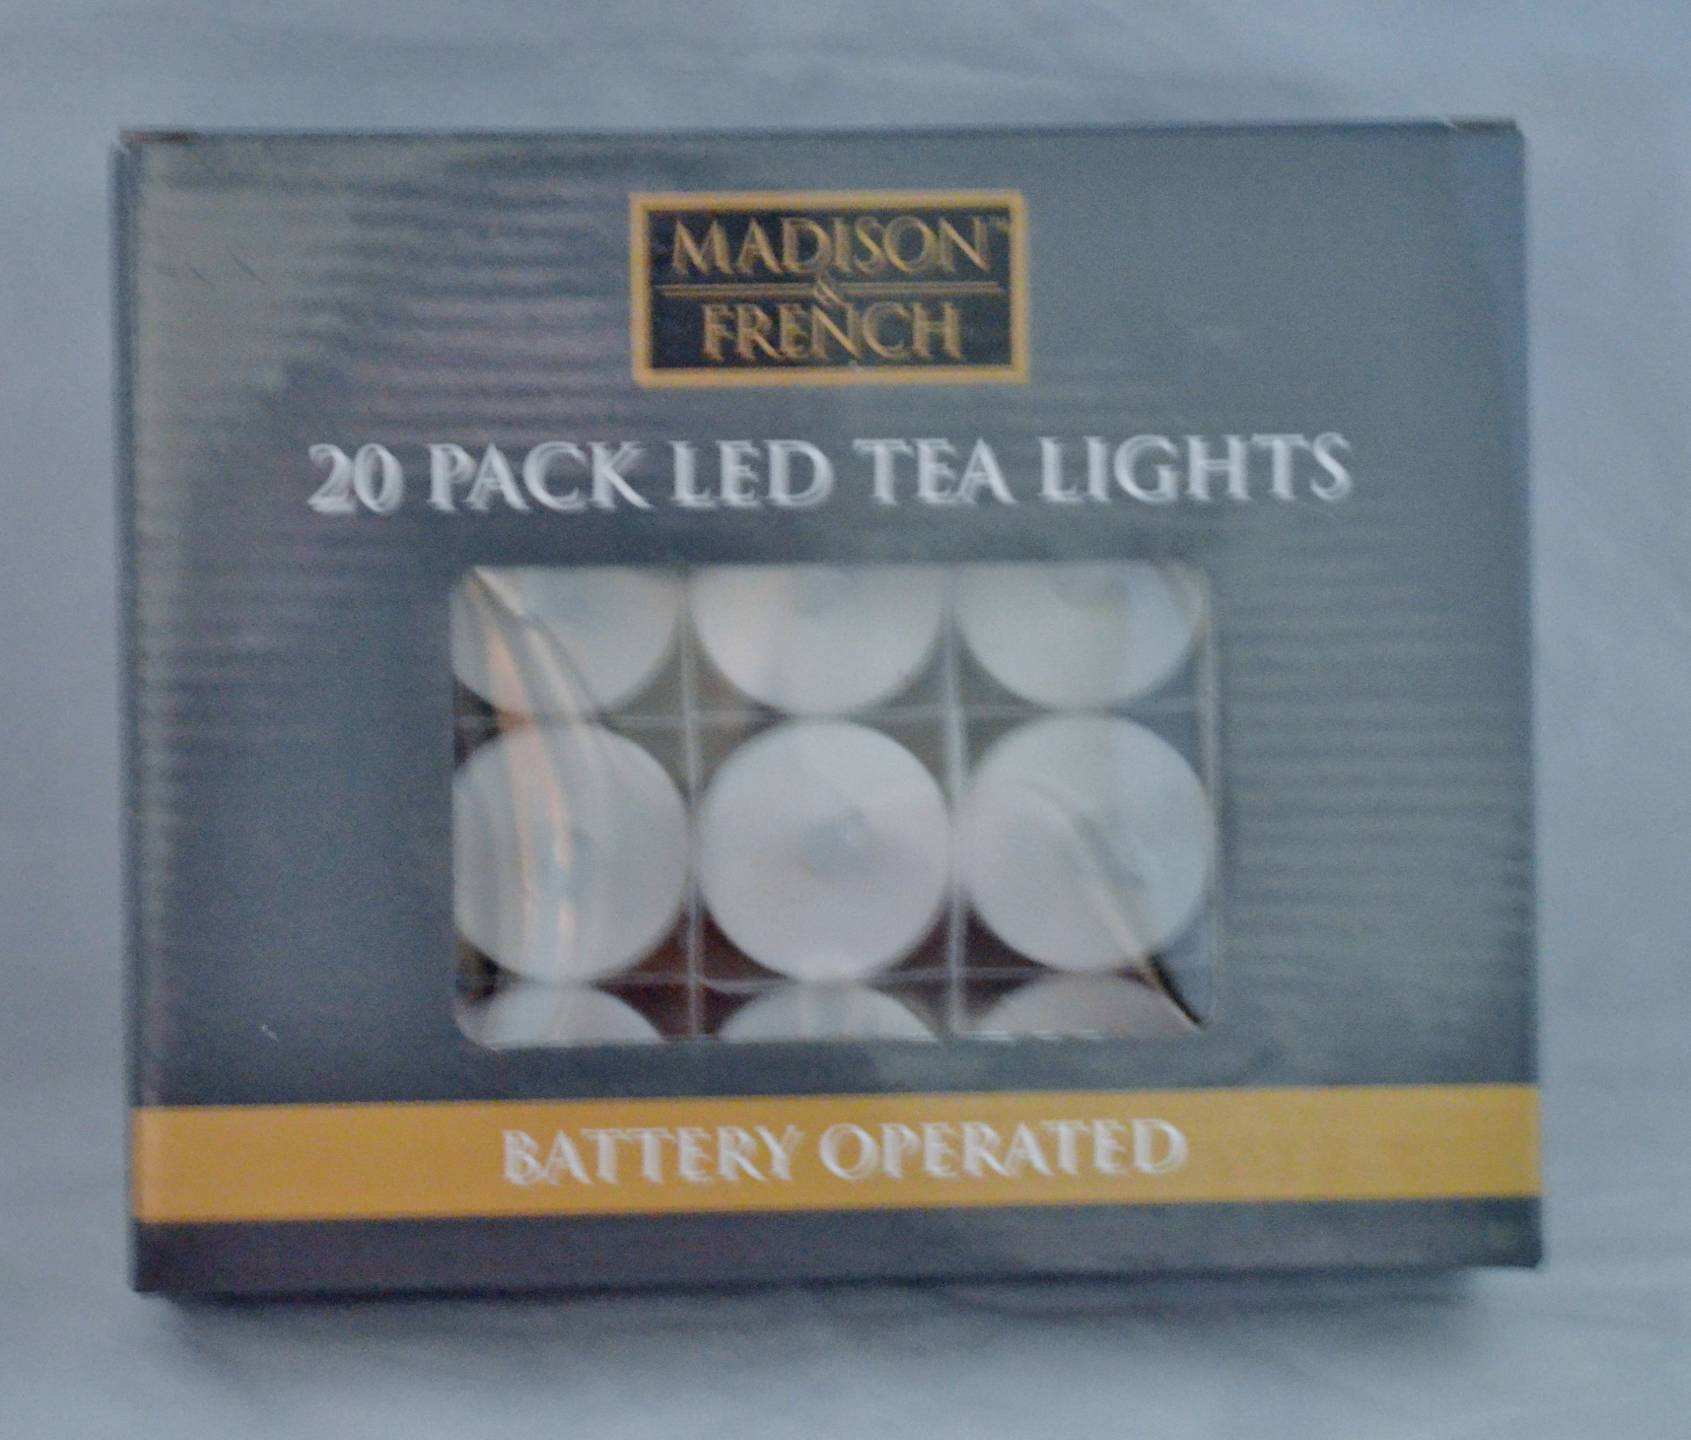 MADISON-FRENCH-20-PACK-LED-TEA-LIGHTS-BATTERY-OPERATED-INCLUDED